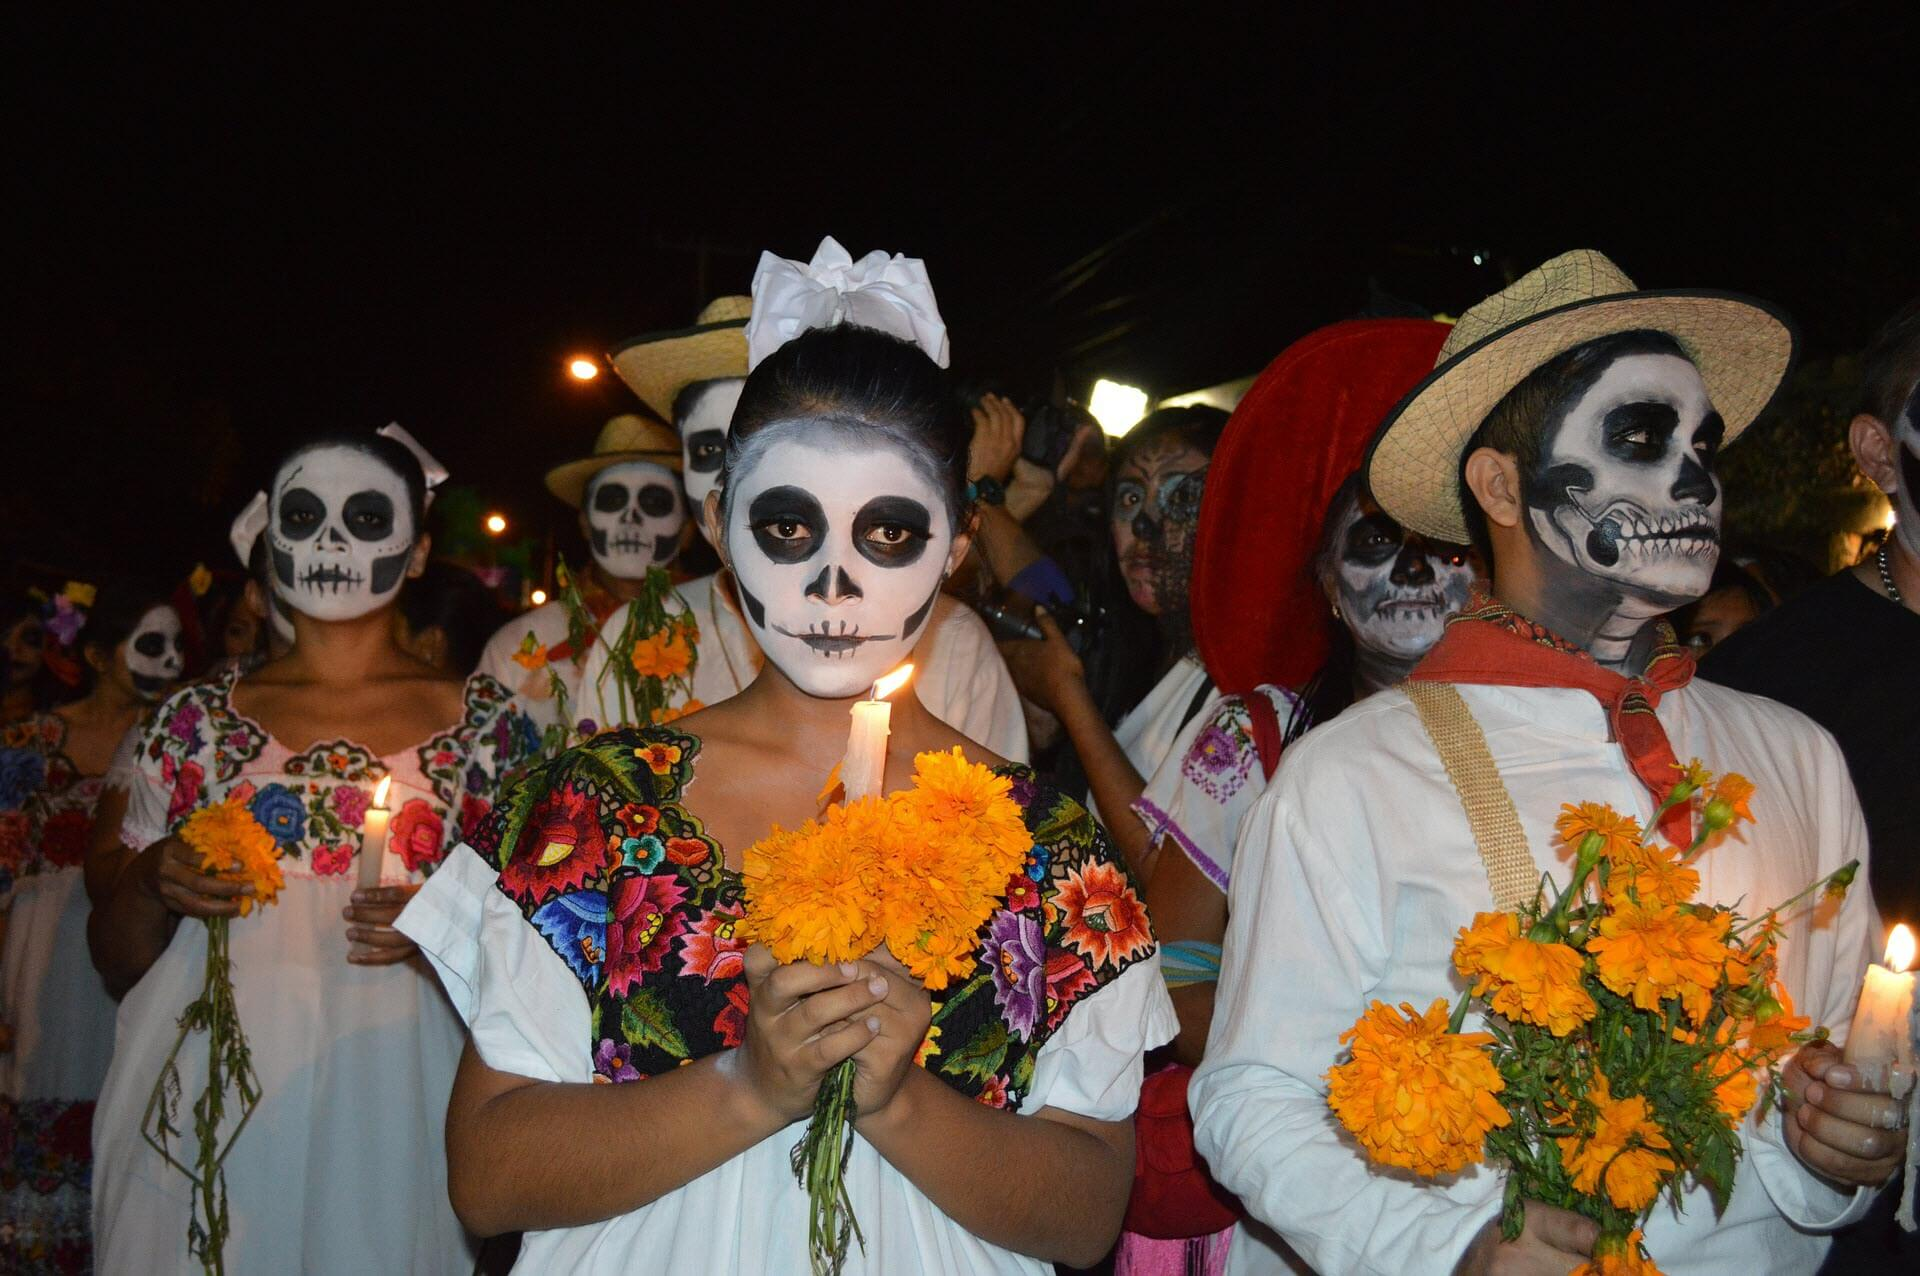 Cozumel My Cozumel Day of the dead parade